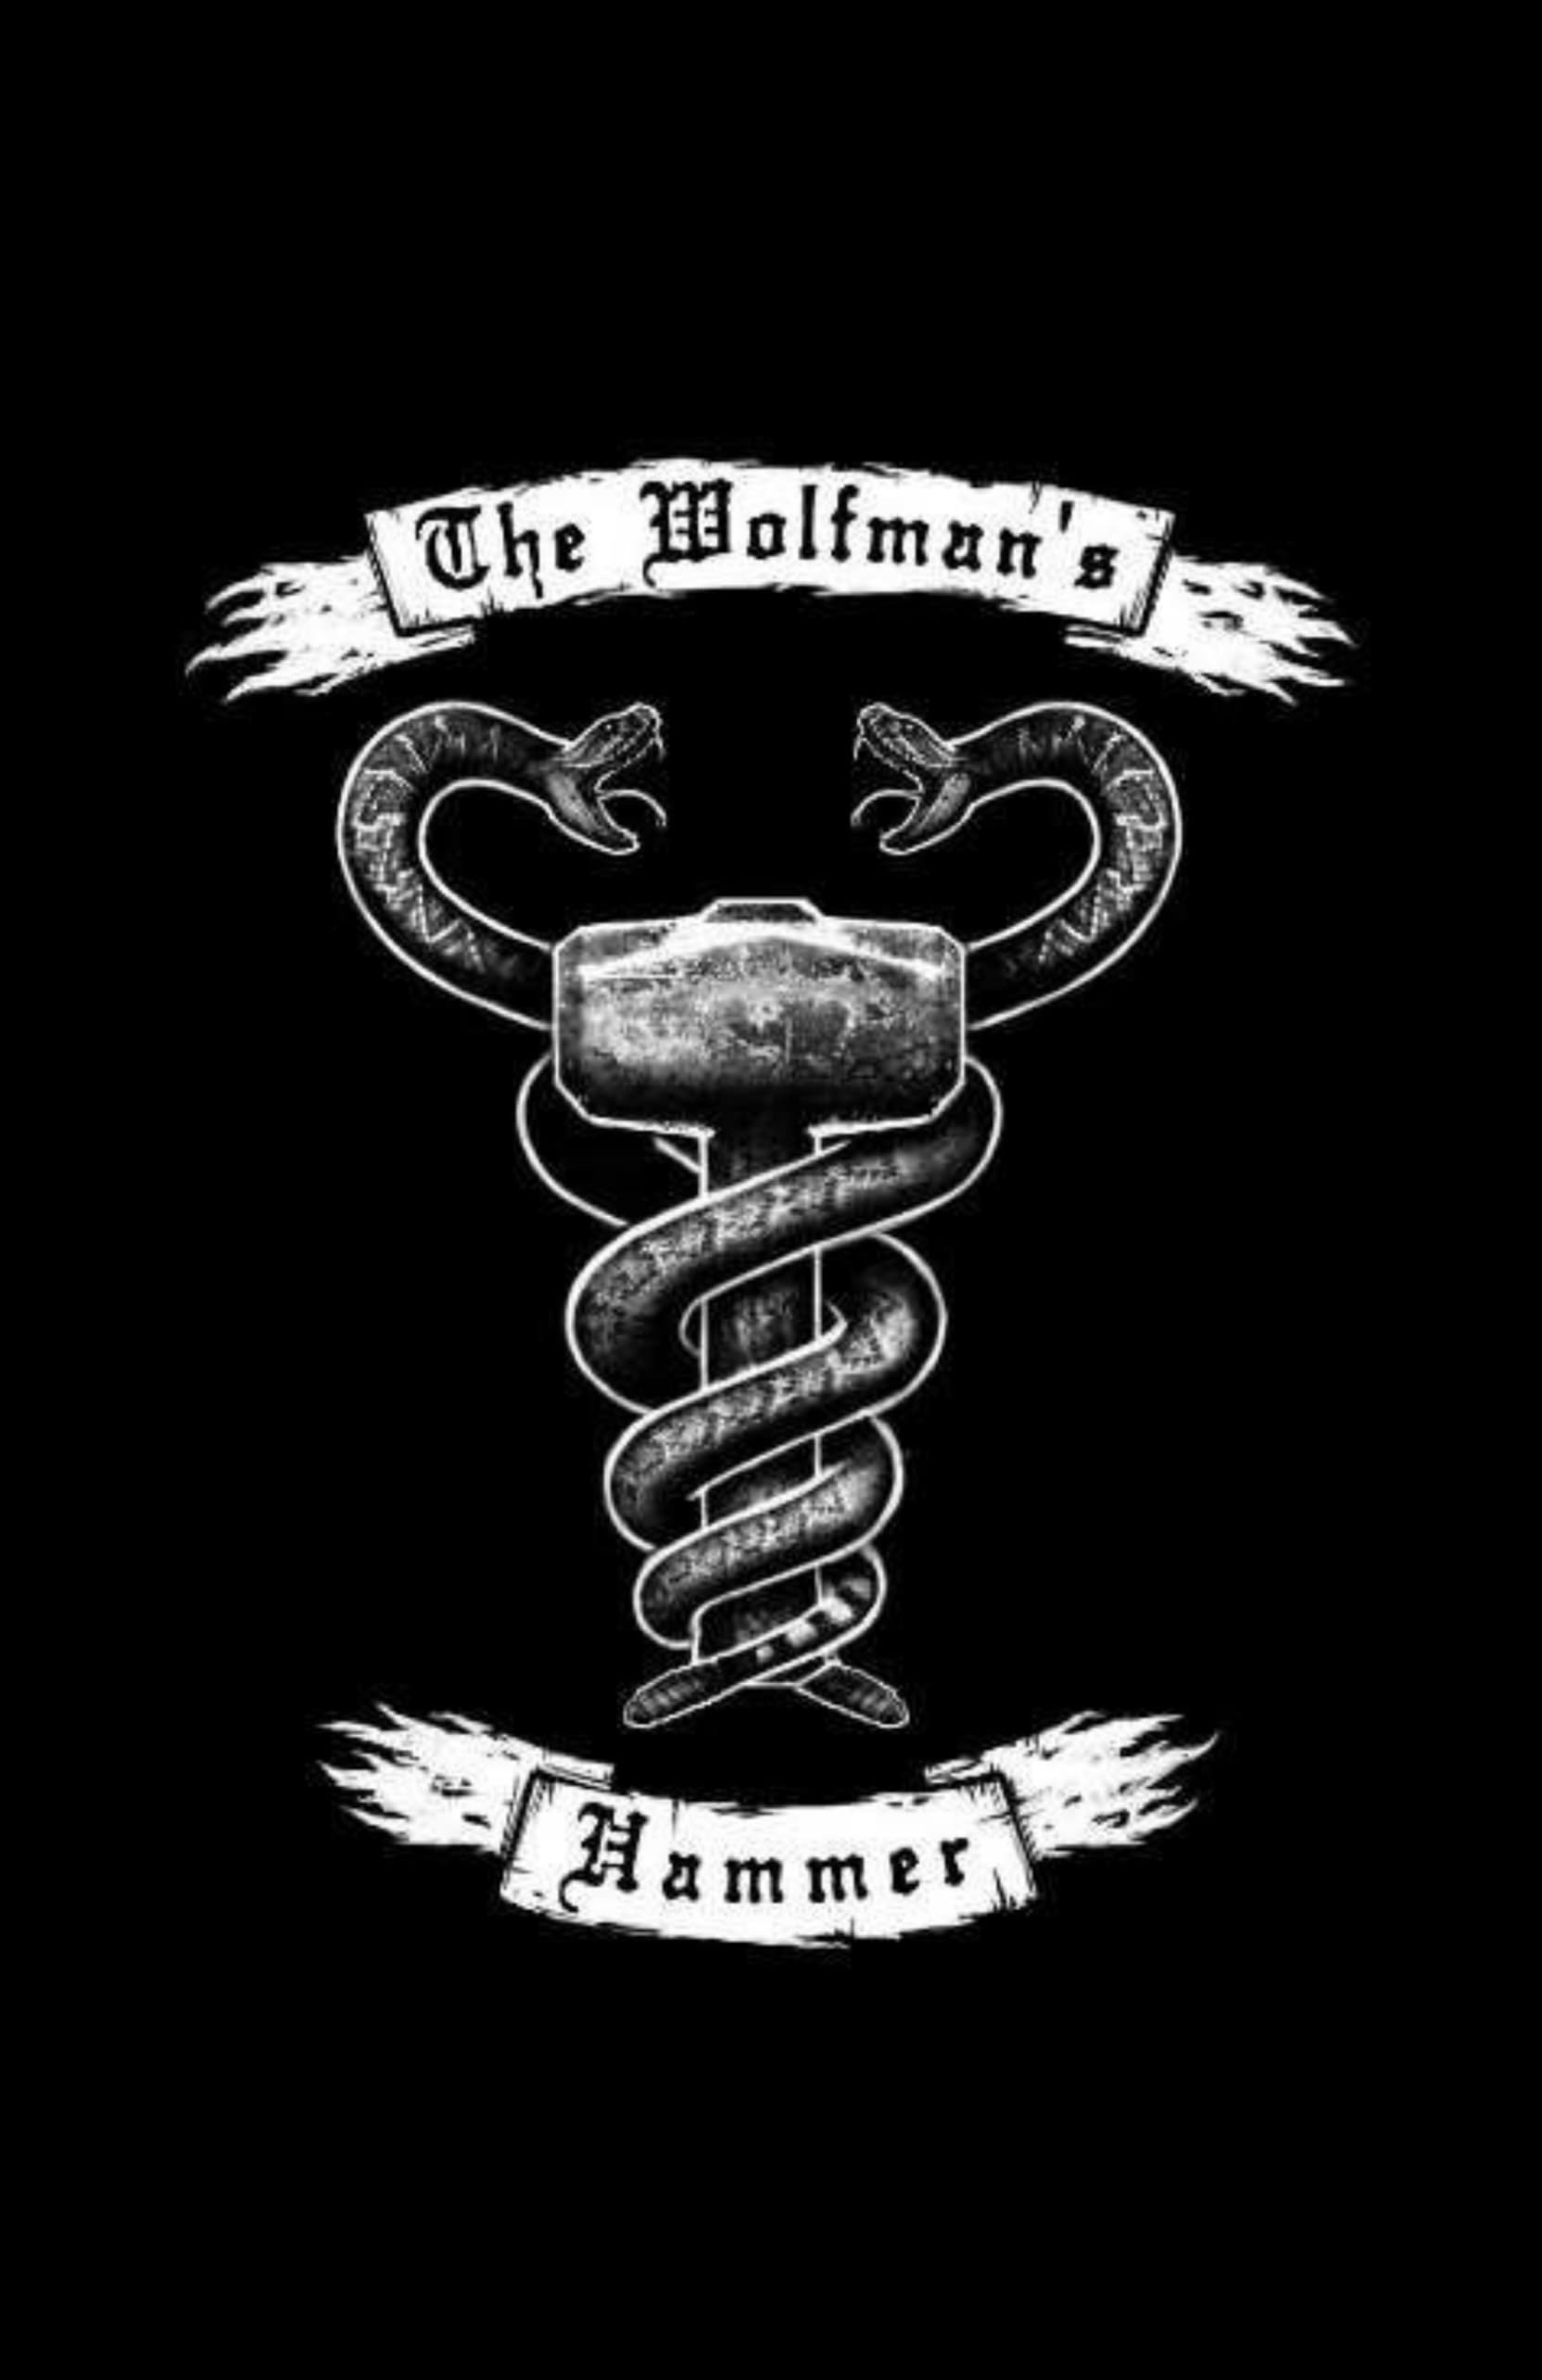 The Wolfman's Hammer